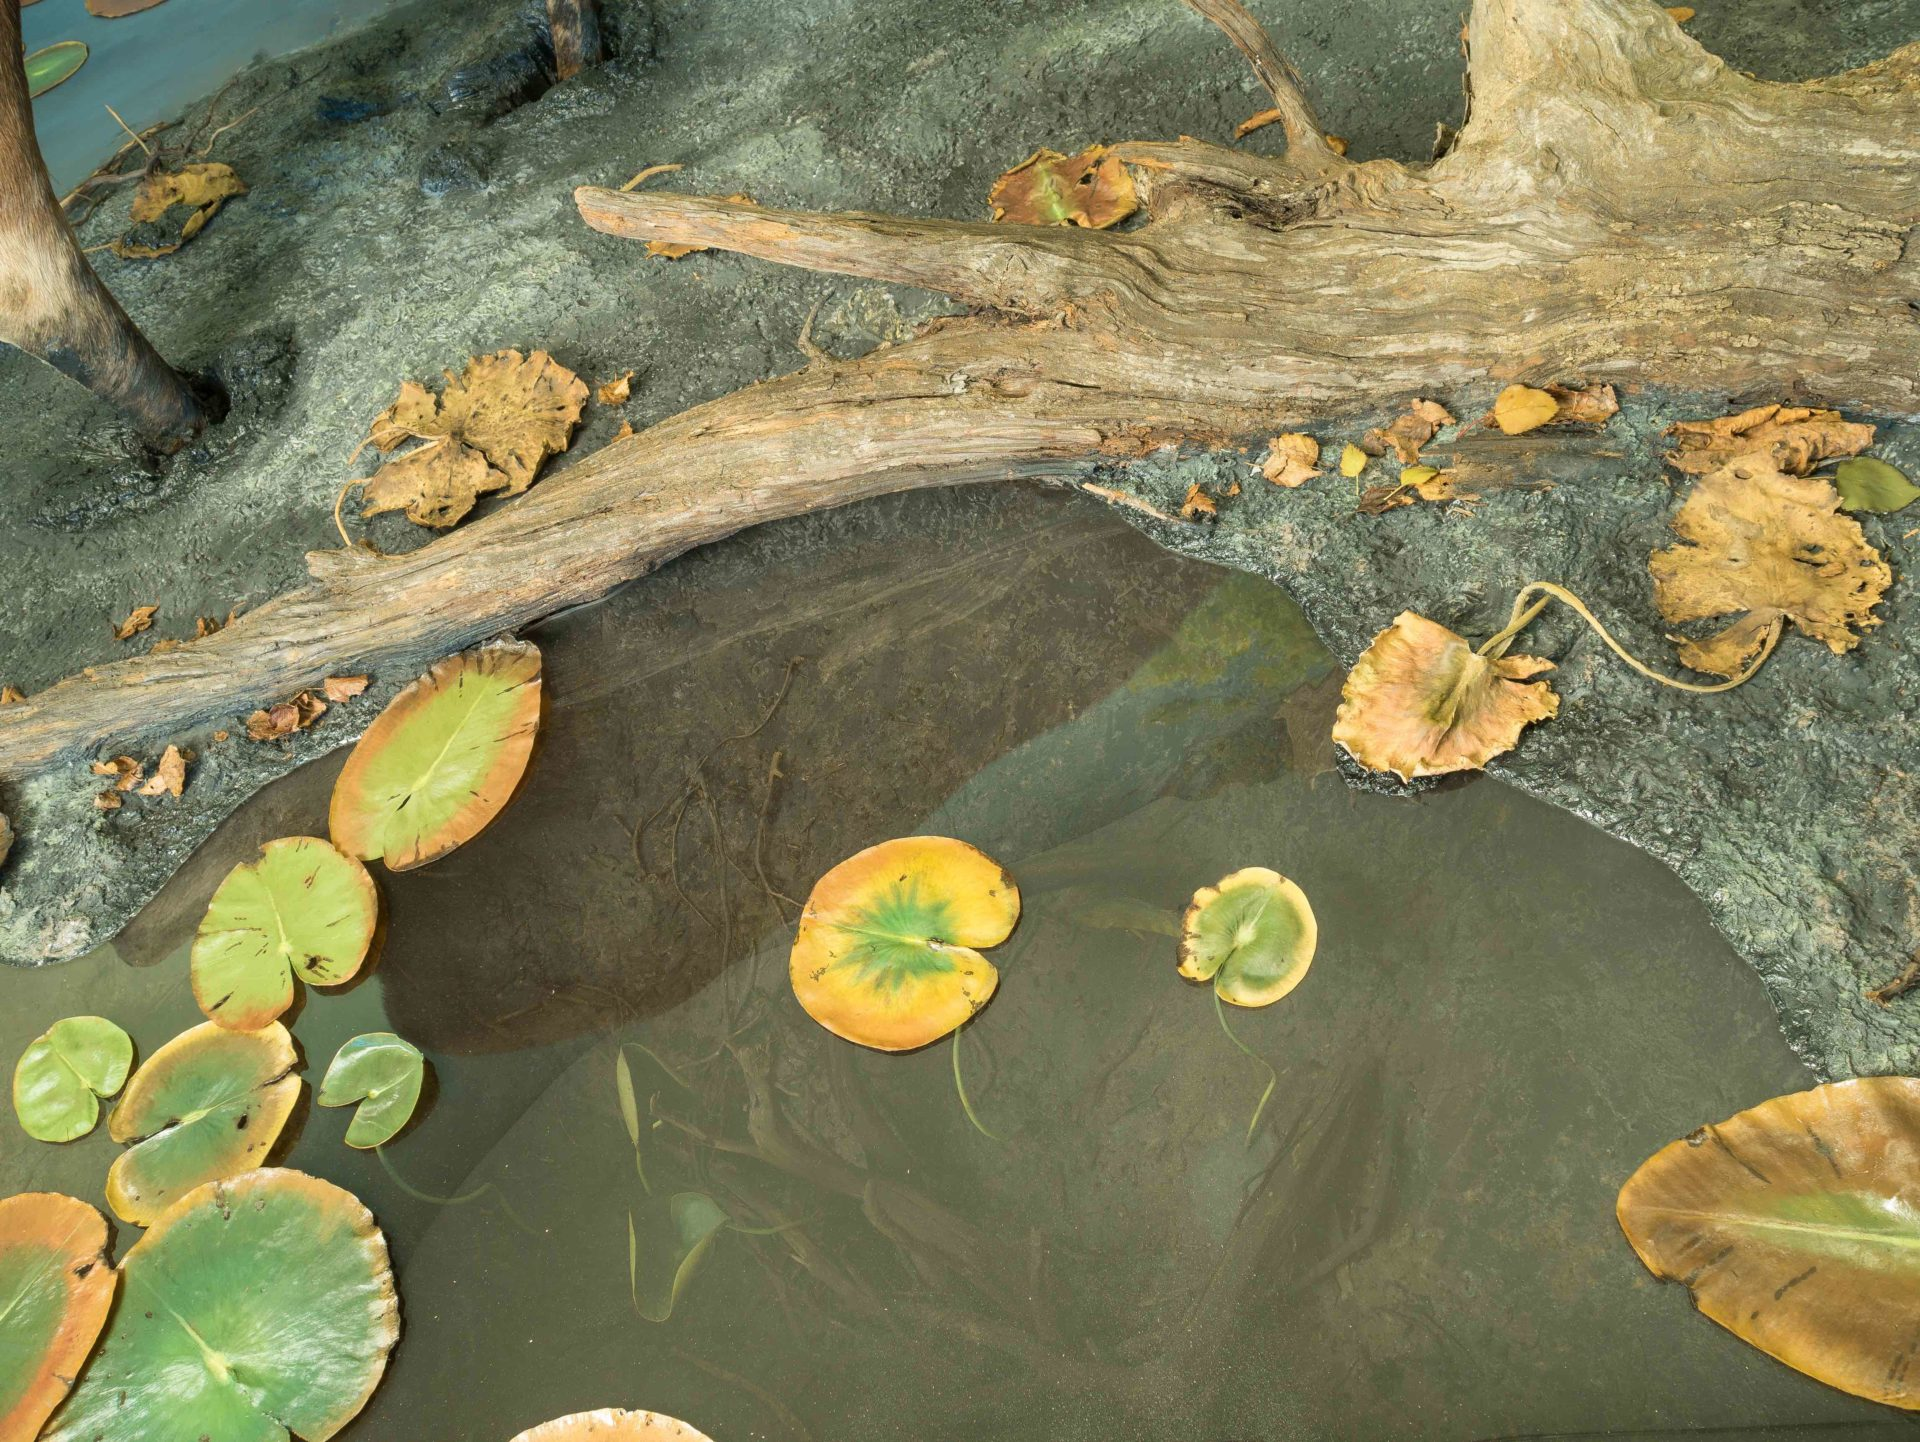 Closeup image of Water and water lilies from Moose diorama